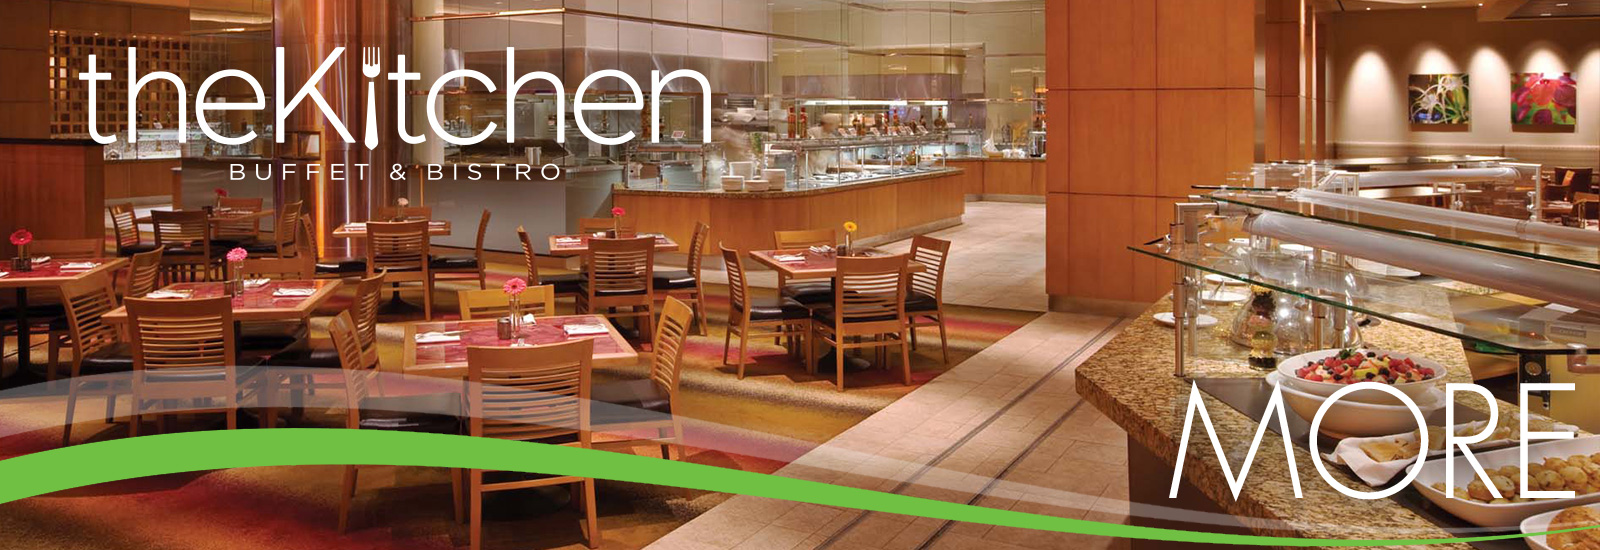 kitchen buffet bistro downtown stl rh downtownstl org is lumiere casino on water lumiere casino buffet coupons